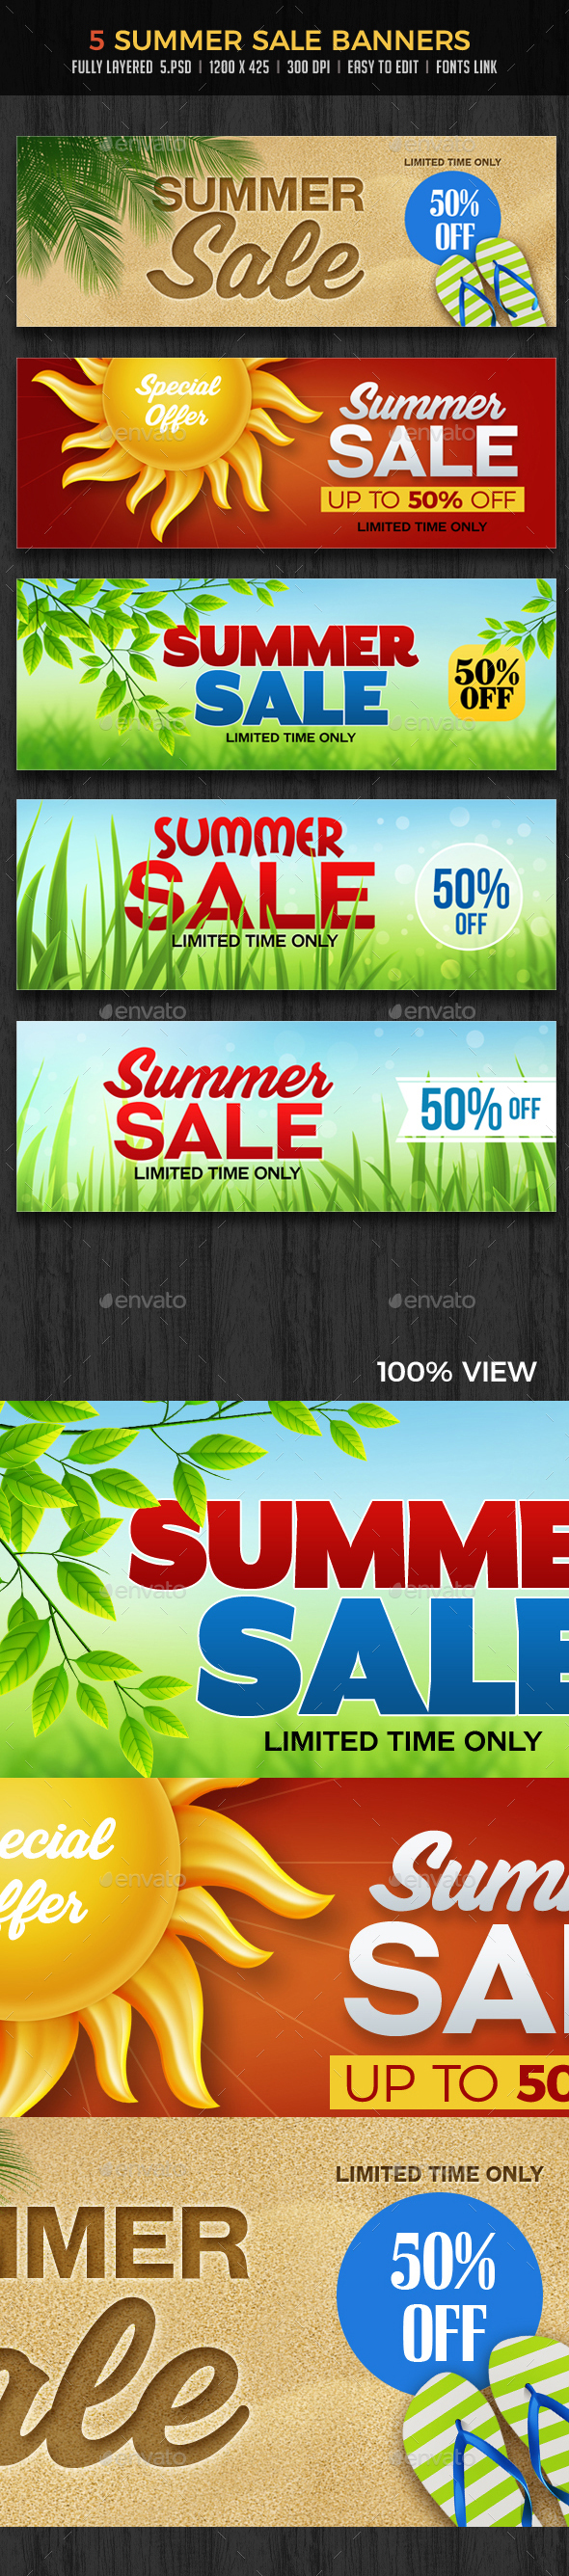 Sale / Summer Sale Banners - Banners & Ads Web Elements